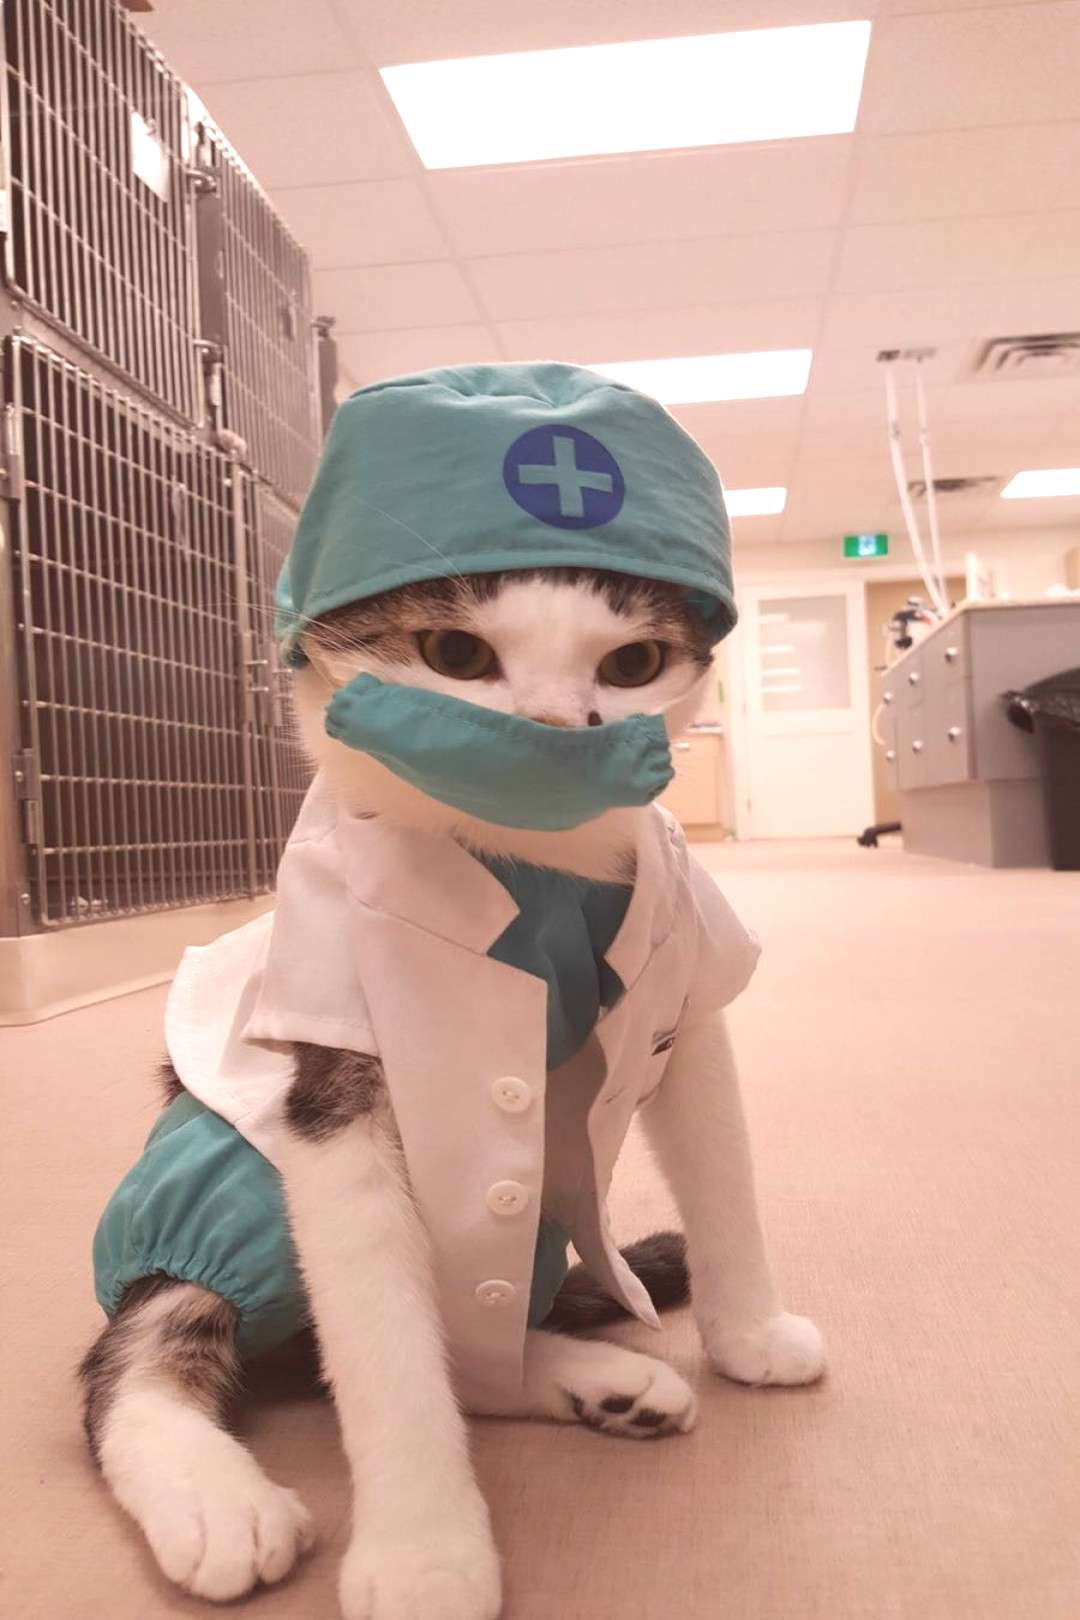 insanityrn Nurse Floofypants is our most requested OR nurse. She just puts the patients at ease